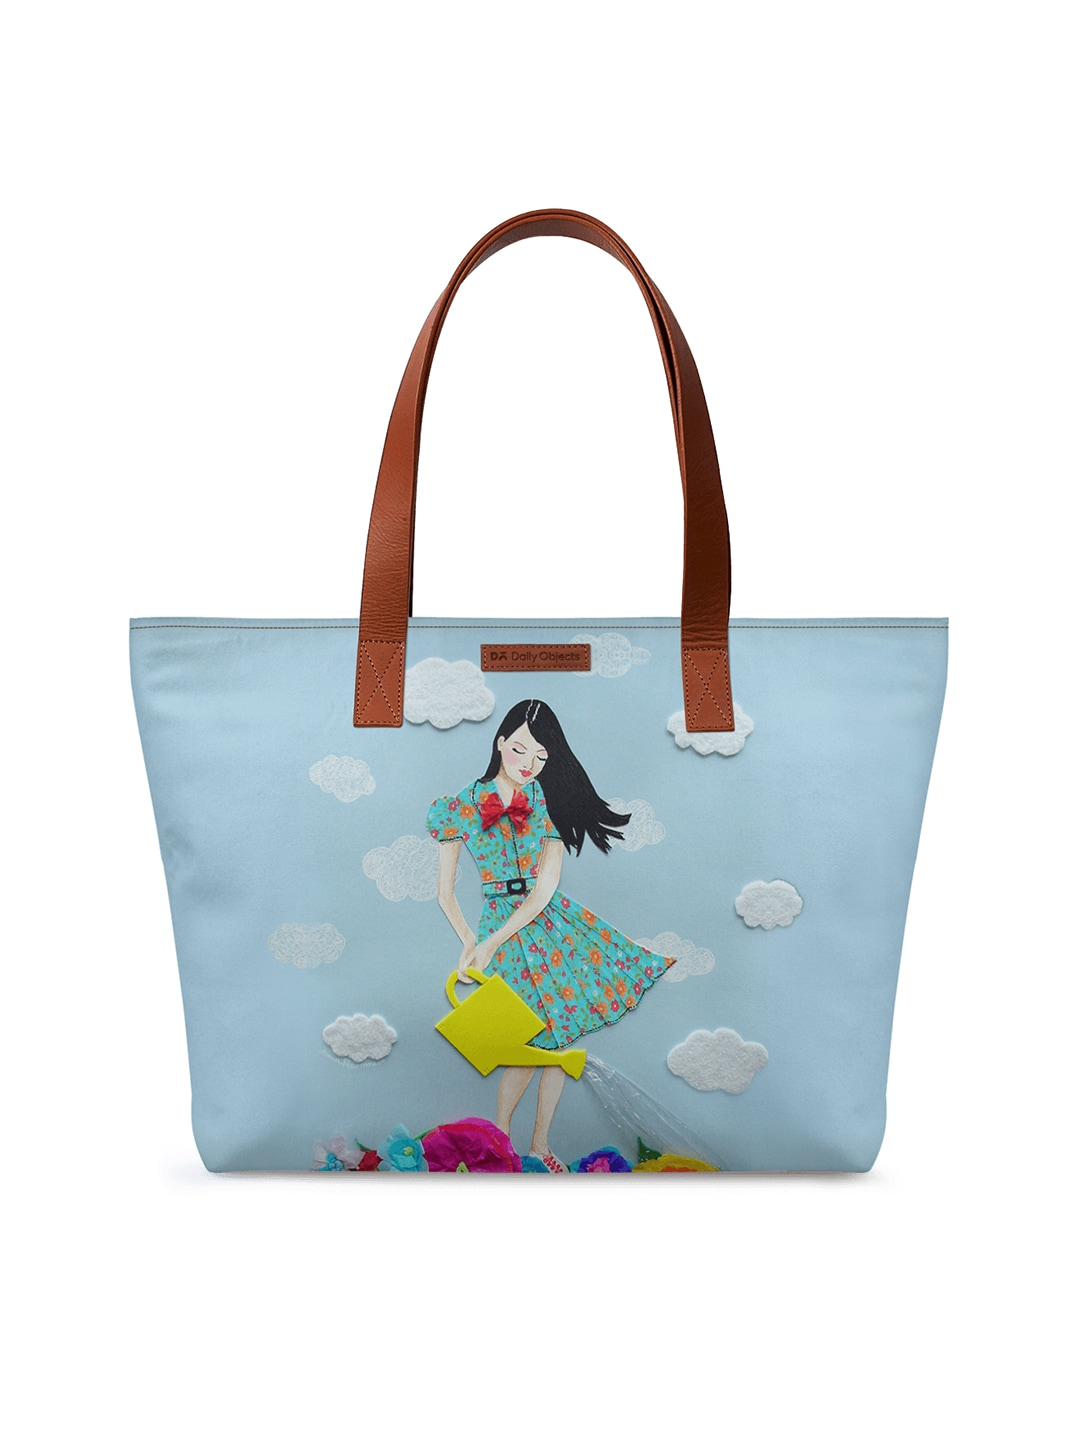 2c2cf58fe29 Tote Bag - Buy Latest Tote Bags For Women   Girls Online   Myntra